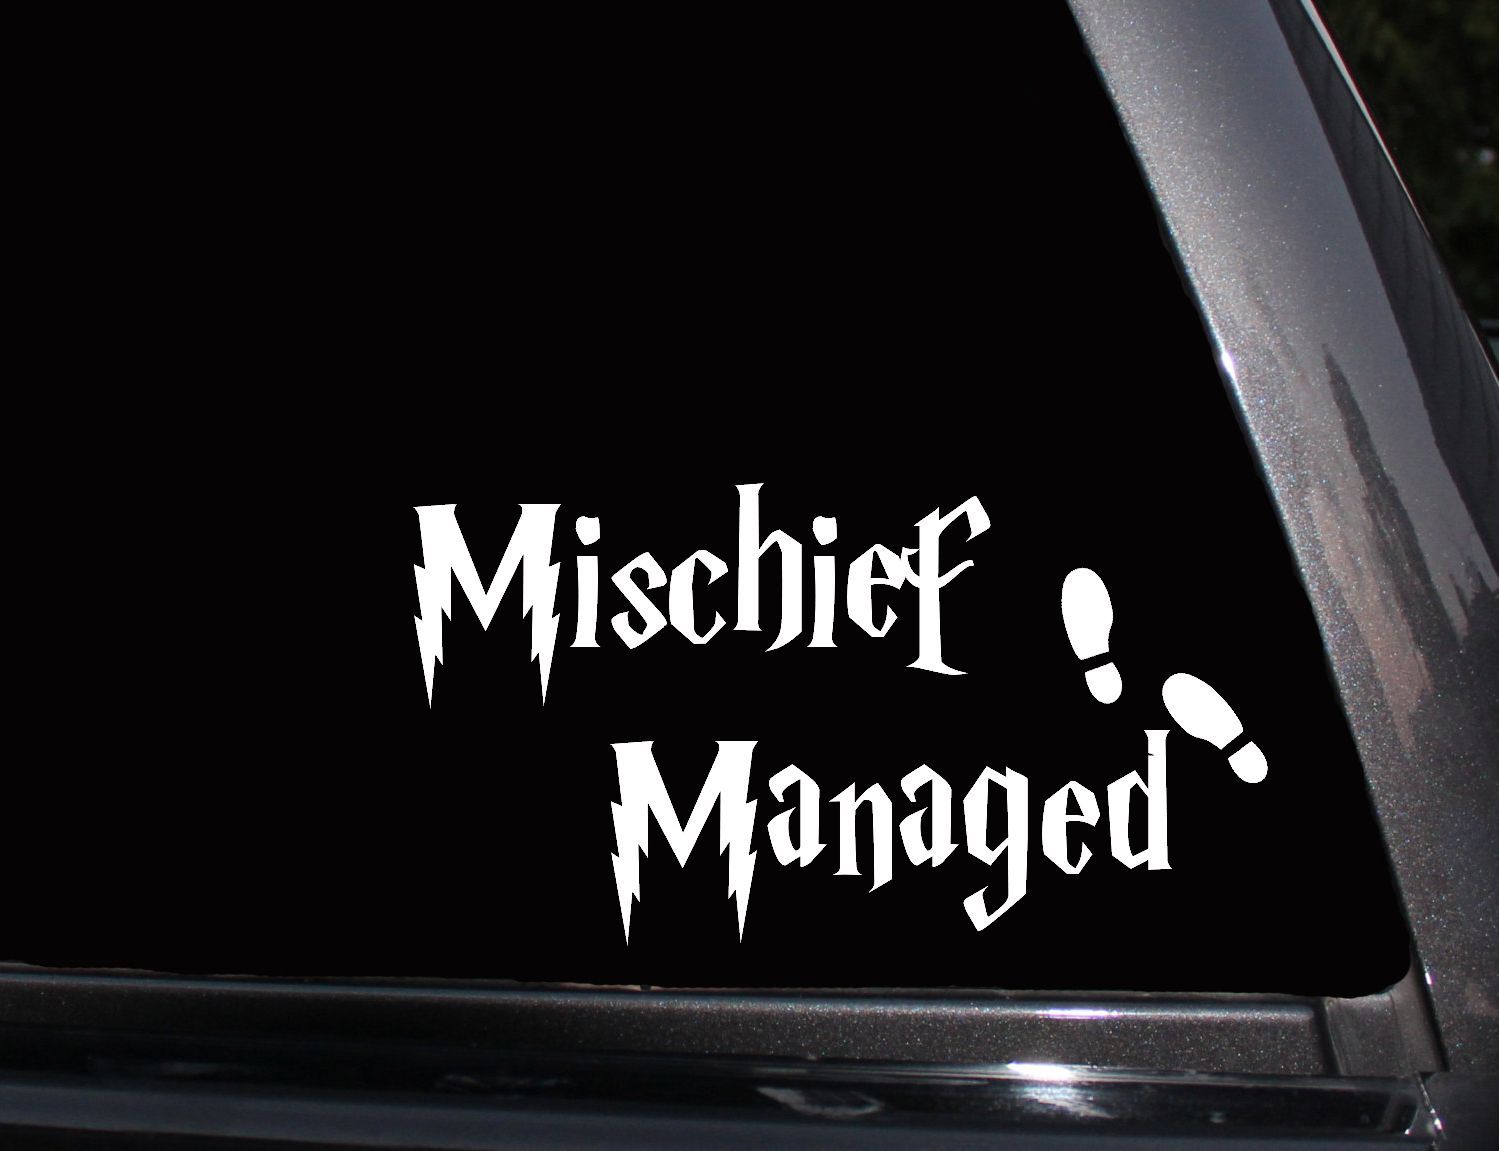 Michief Managed Harry Potter Vinyl Decal Phone Decal Laptop Decal Wall Decal Car Decal Car Decals Phone Decals Vinyl Decals [ 1151 x 1500 Pixel ]